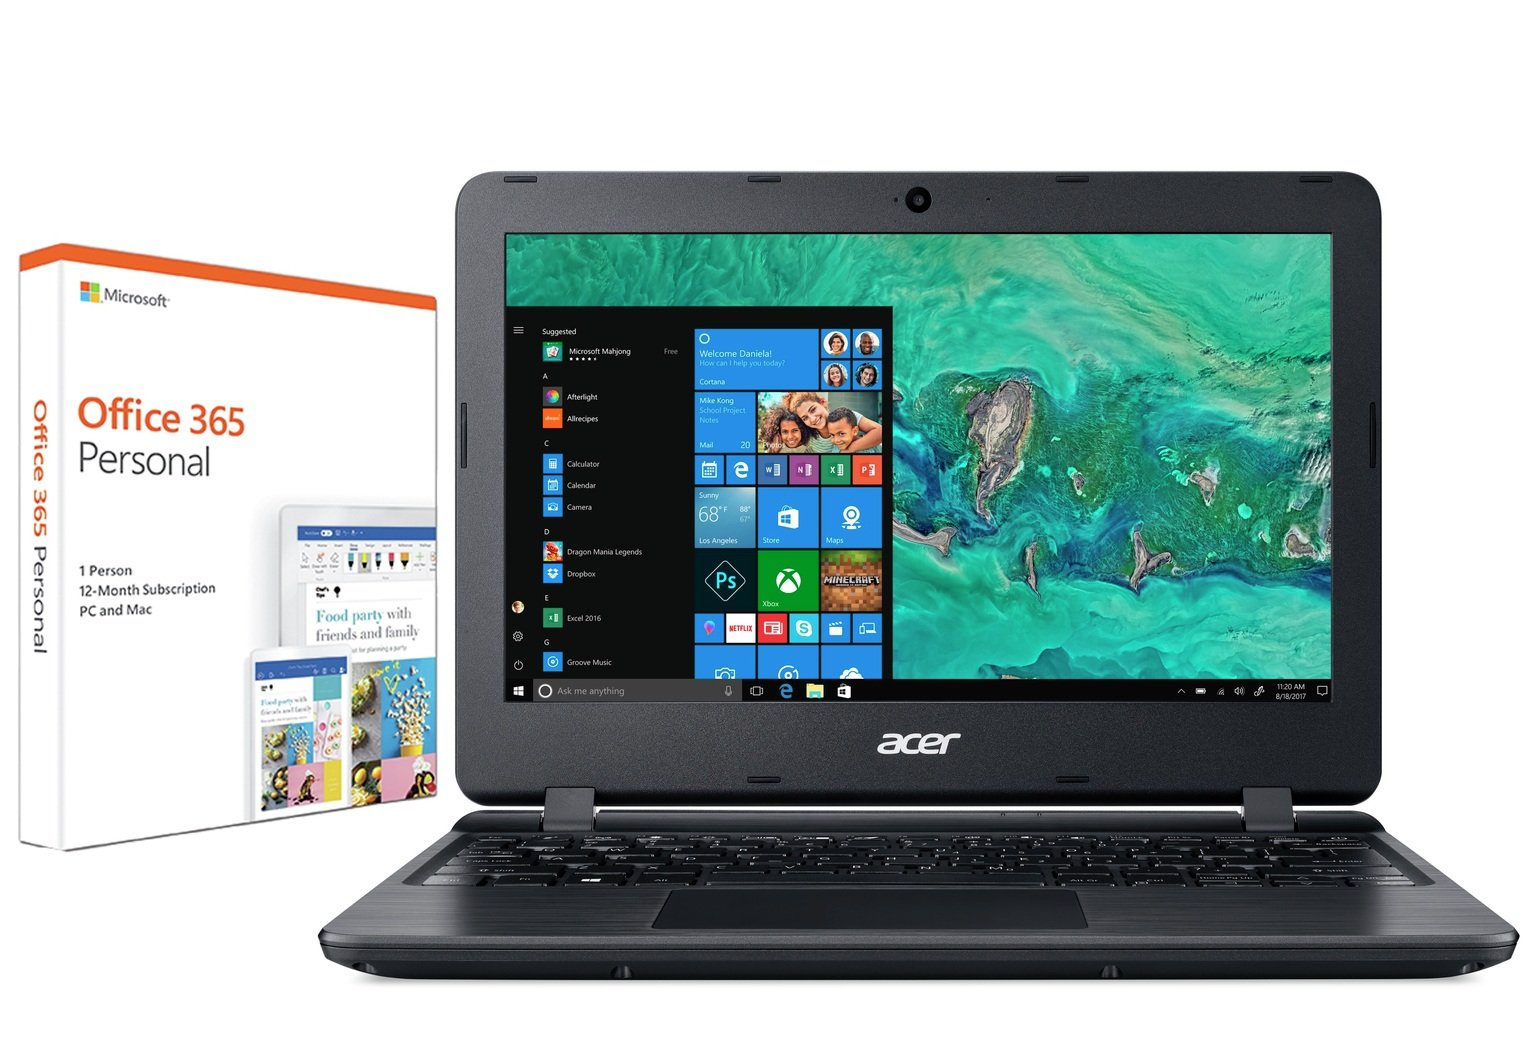 Acer Aspire 1 11In Celeron 2GB 32GB Cloudbook Laptop - Black from Acer